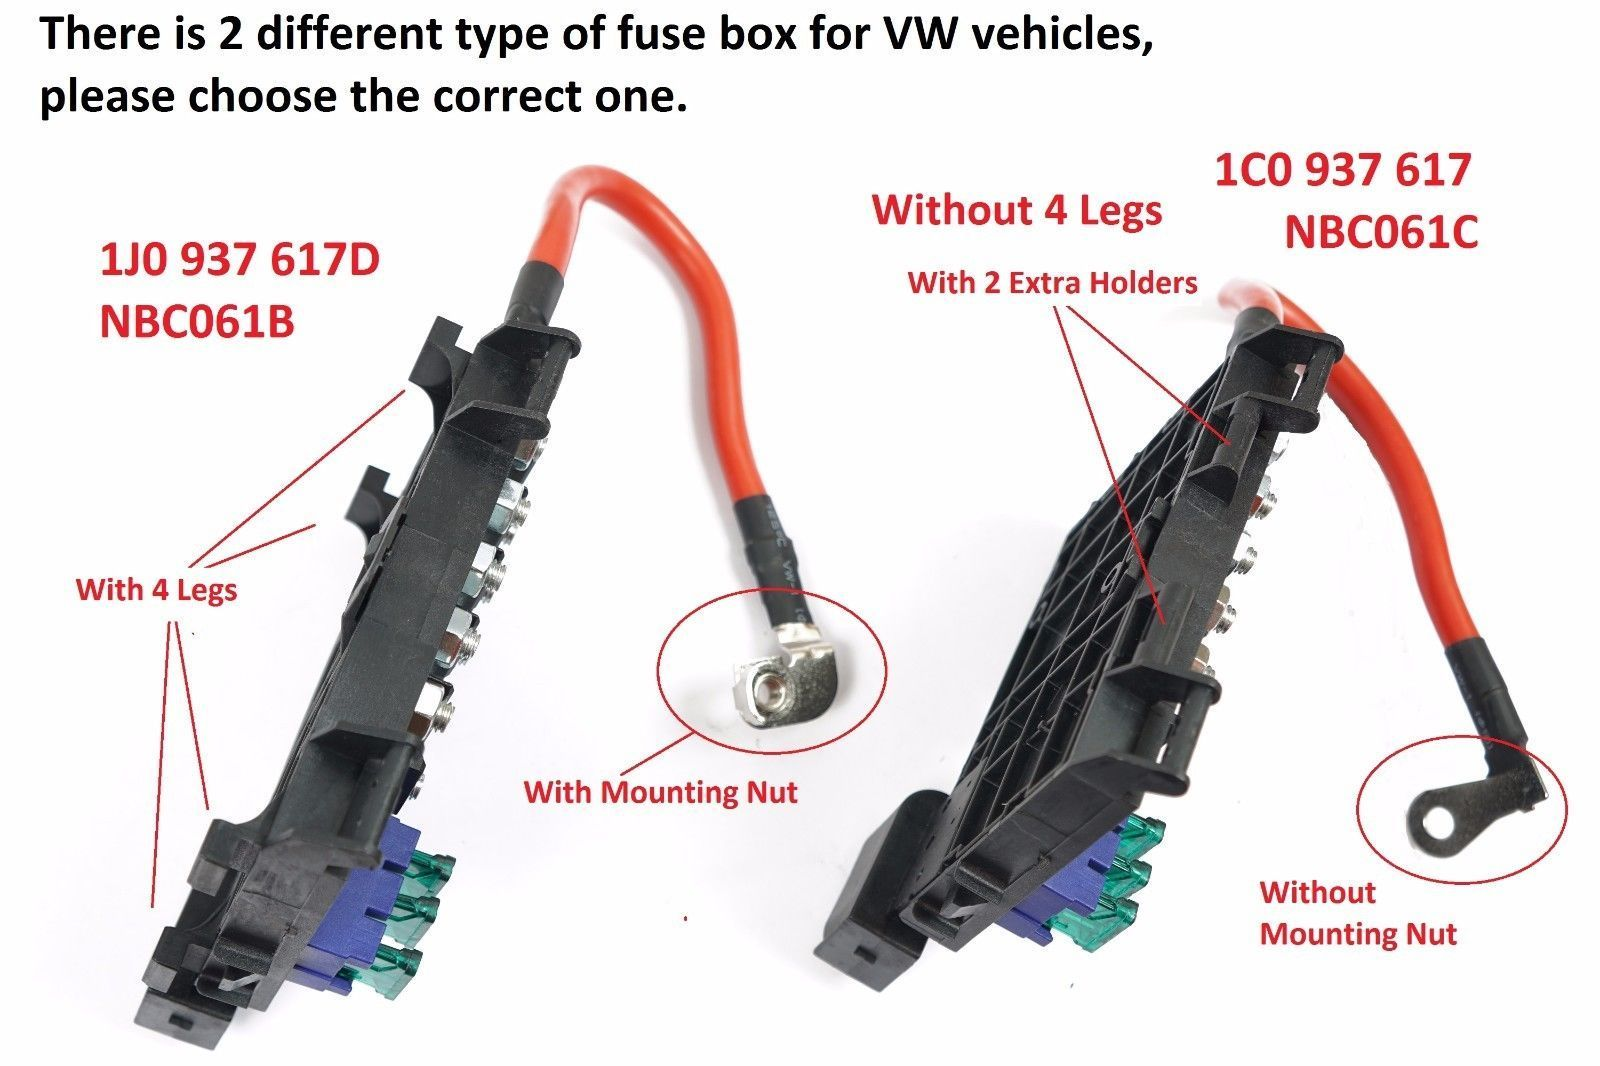 No More Breaking For Vw Jetta Golf Beetle 18l 20l Fuse Box Pat Location 1c0937617 Nbc061c